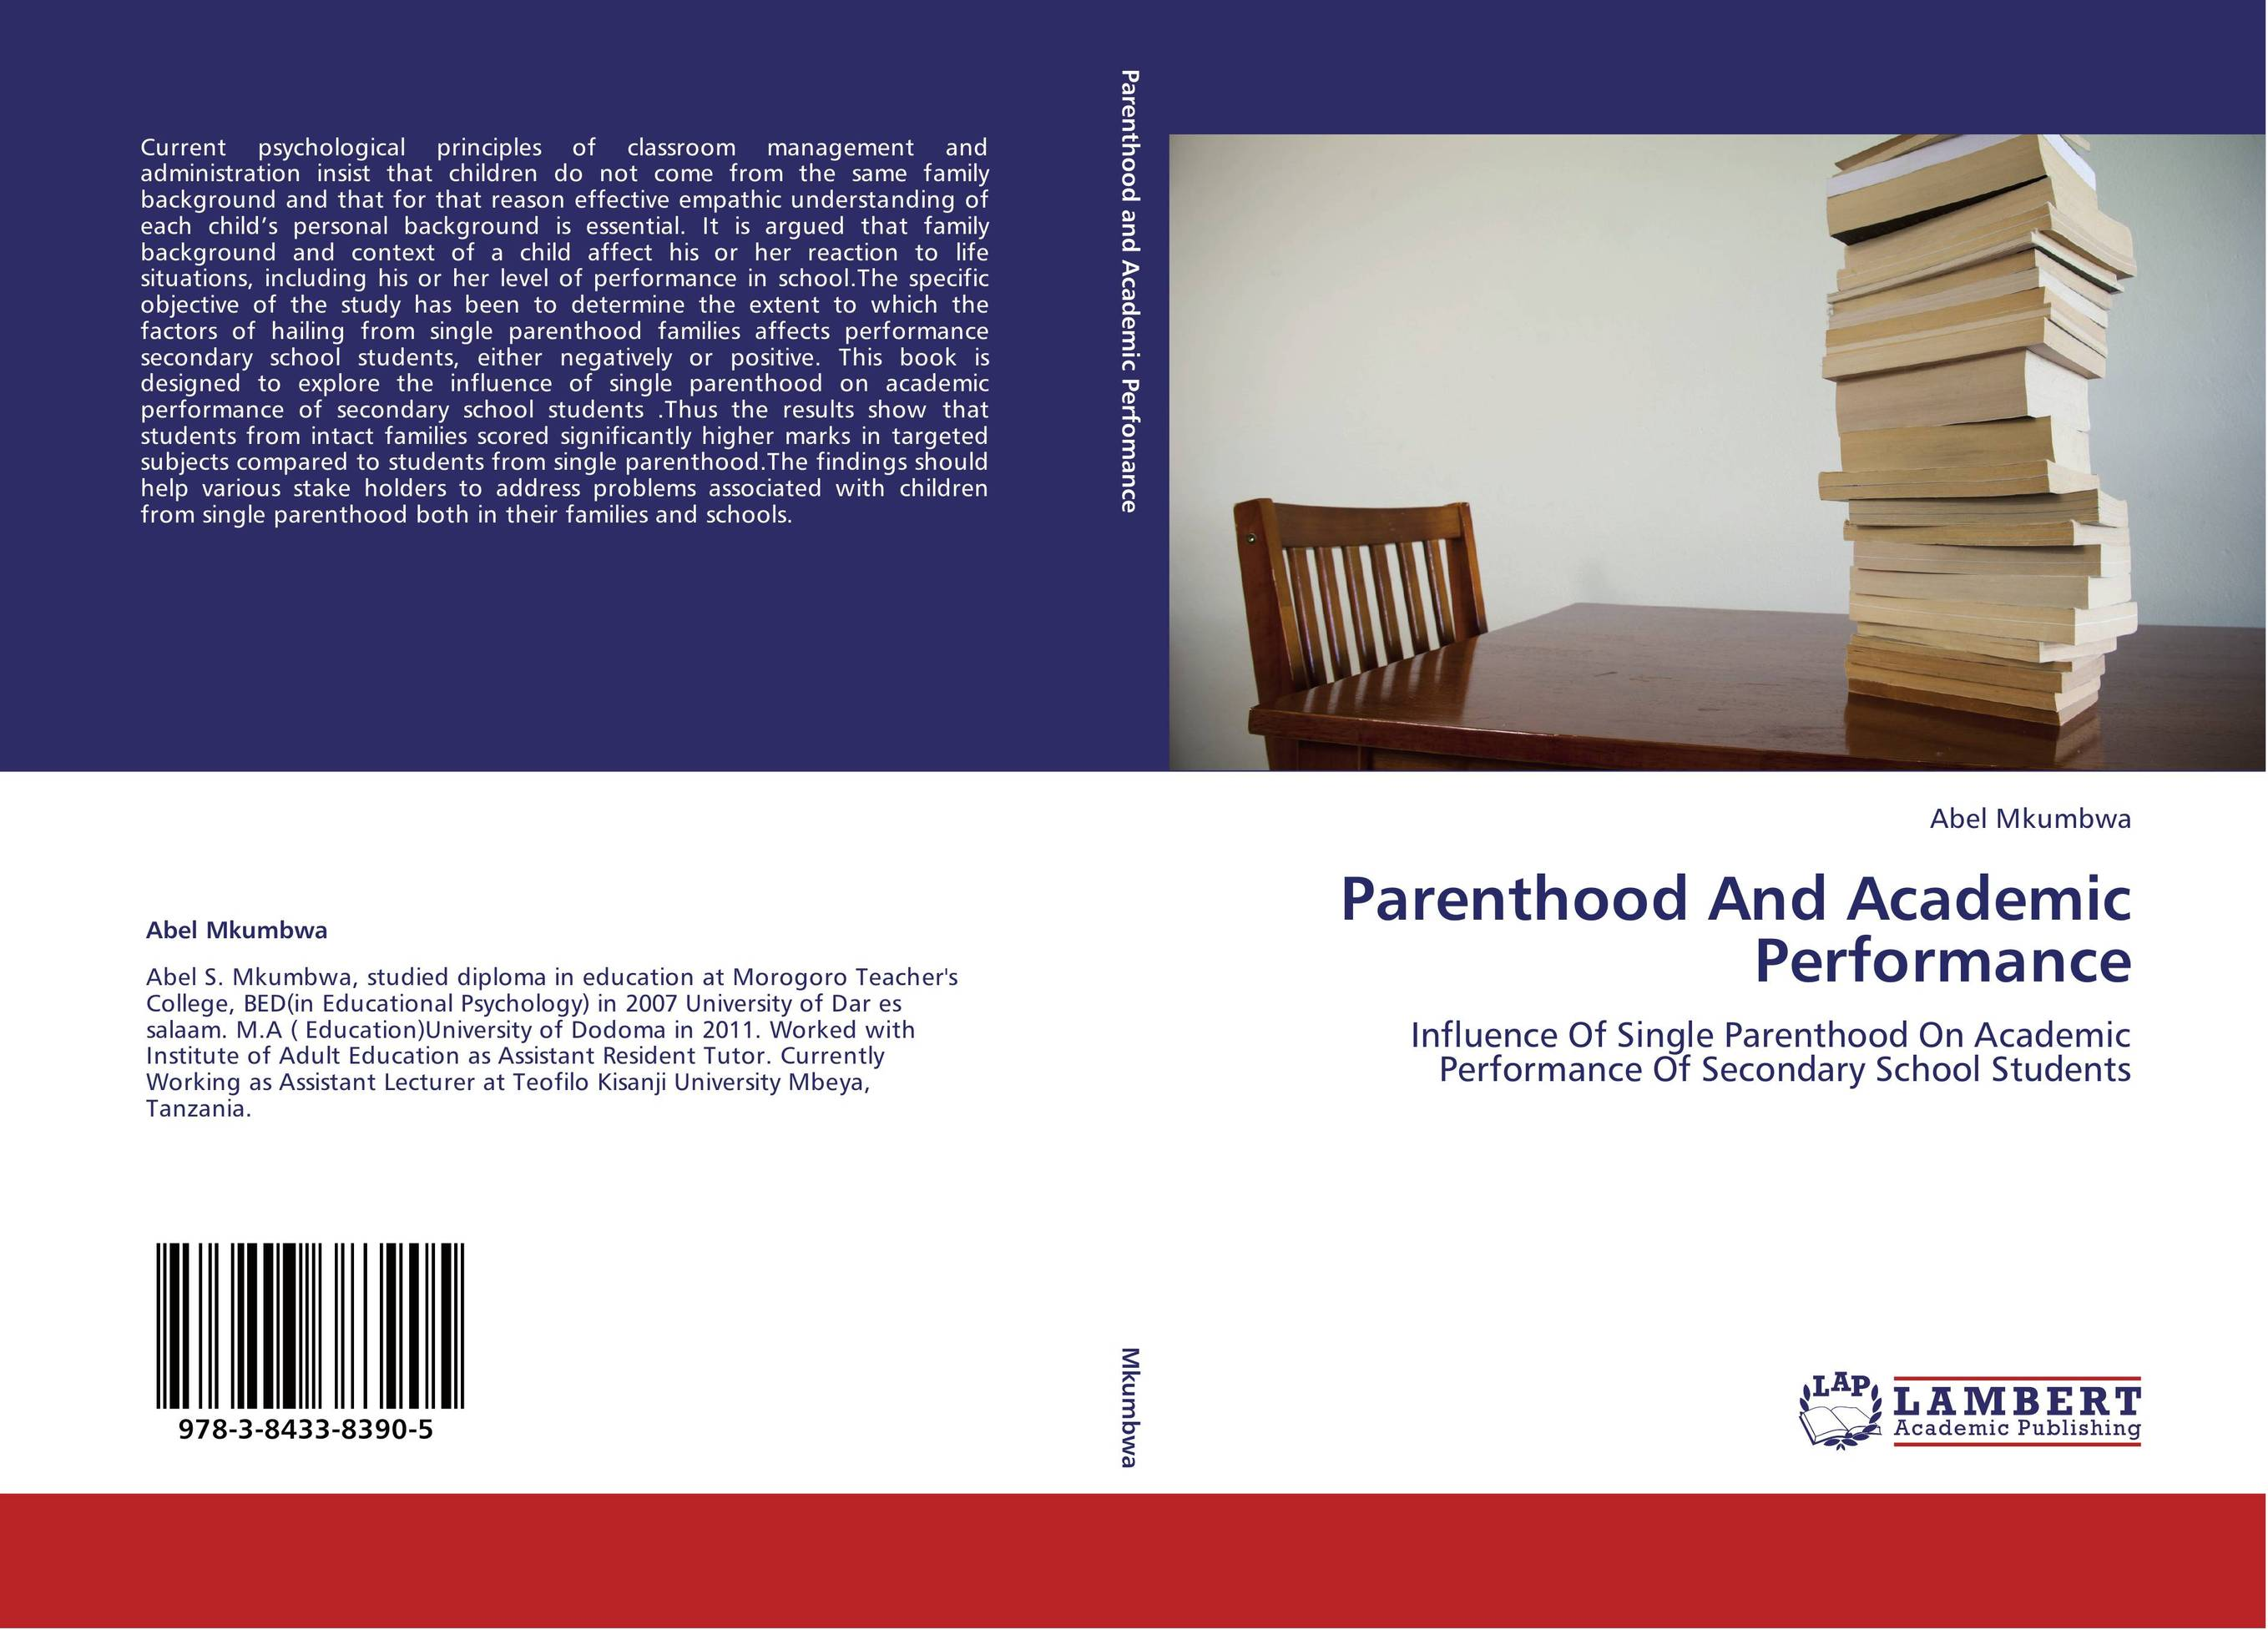 home background on academic performanc 2 research methodology in this study a linear model of graduate student performance was designed graduate student academic performance was taken as a dependent variable and gender, age, faculty of study, schooling, father/guardian social economic status, residential area, medium of schooling, tuition, study hour and accommodation as an independent variables.